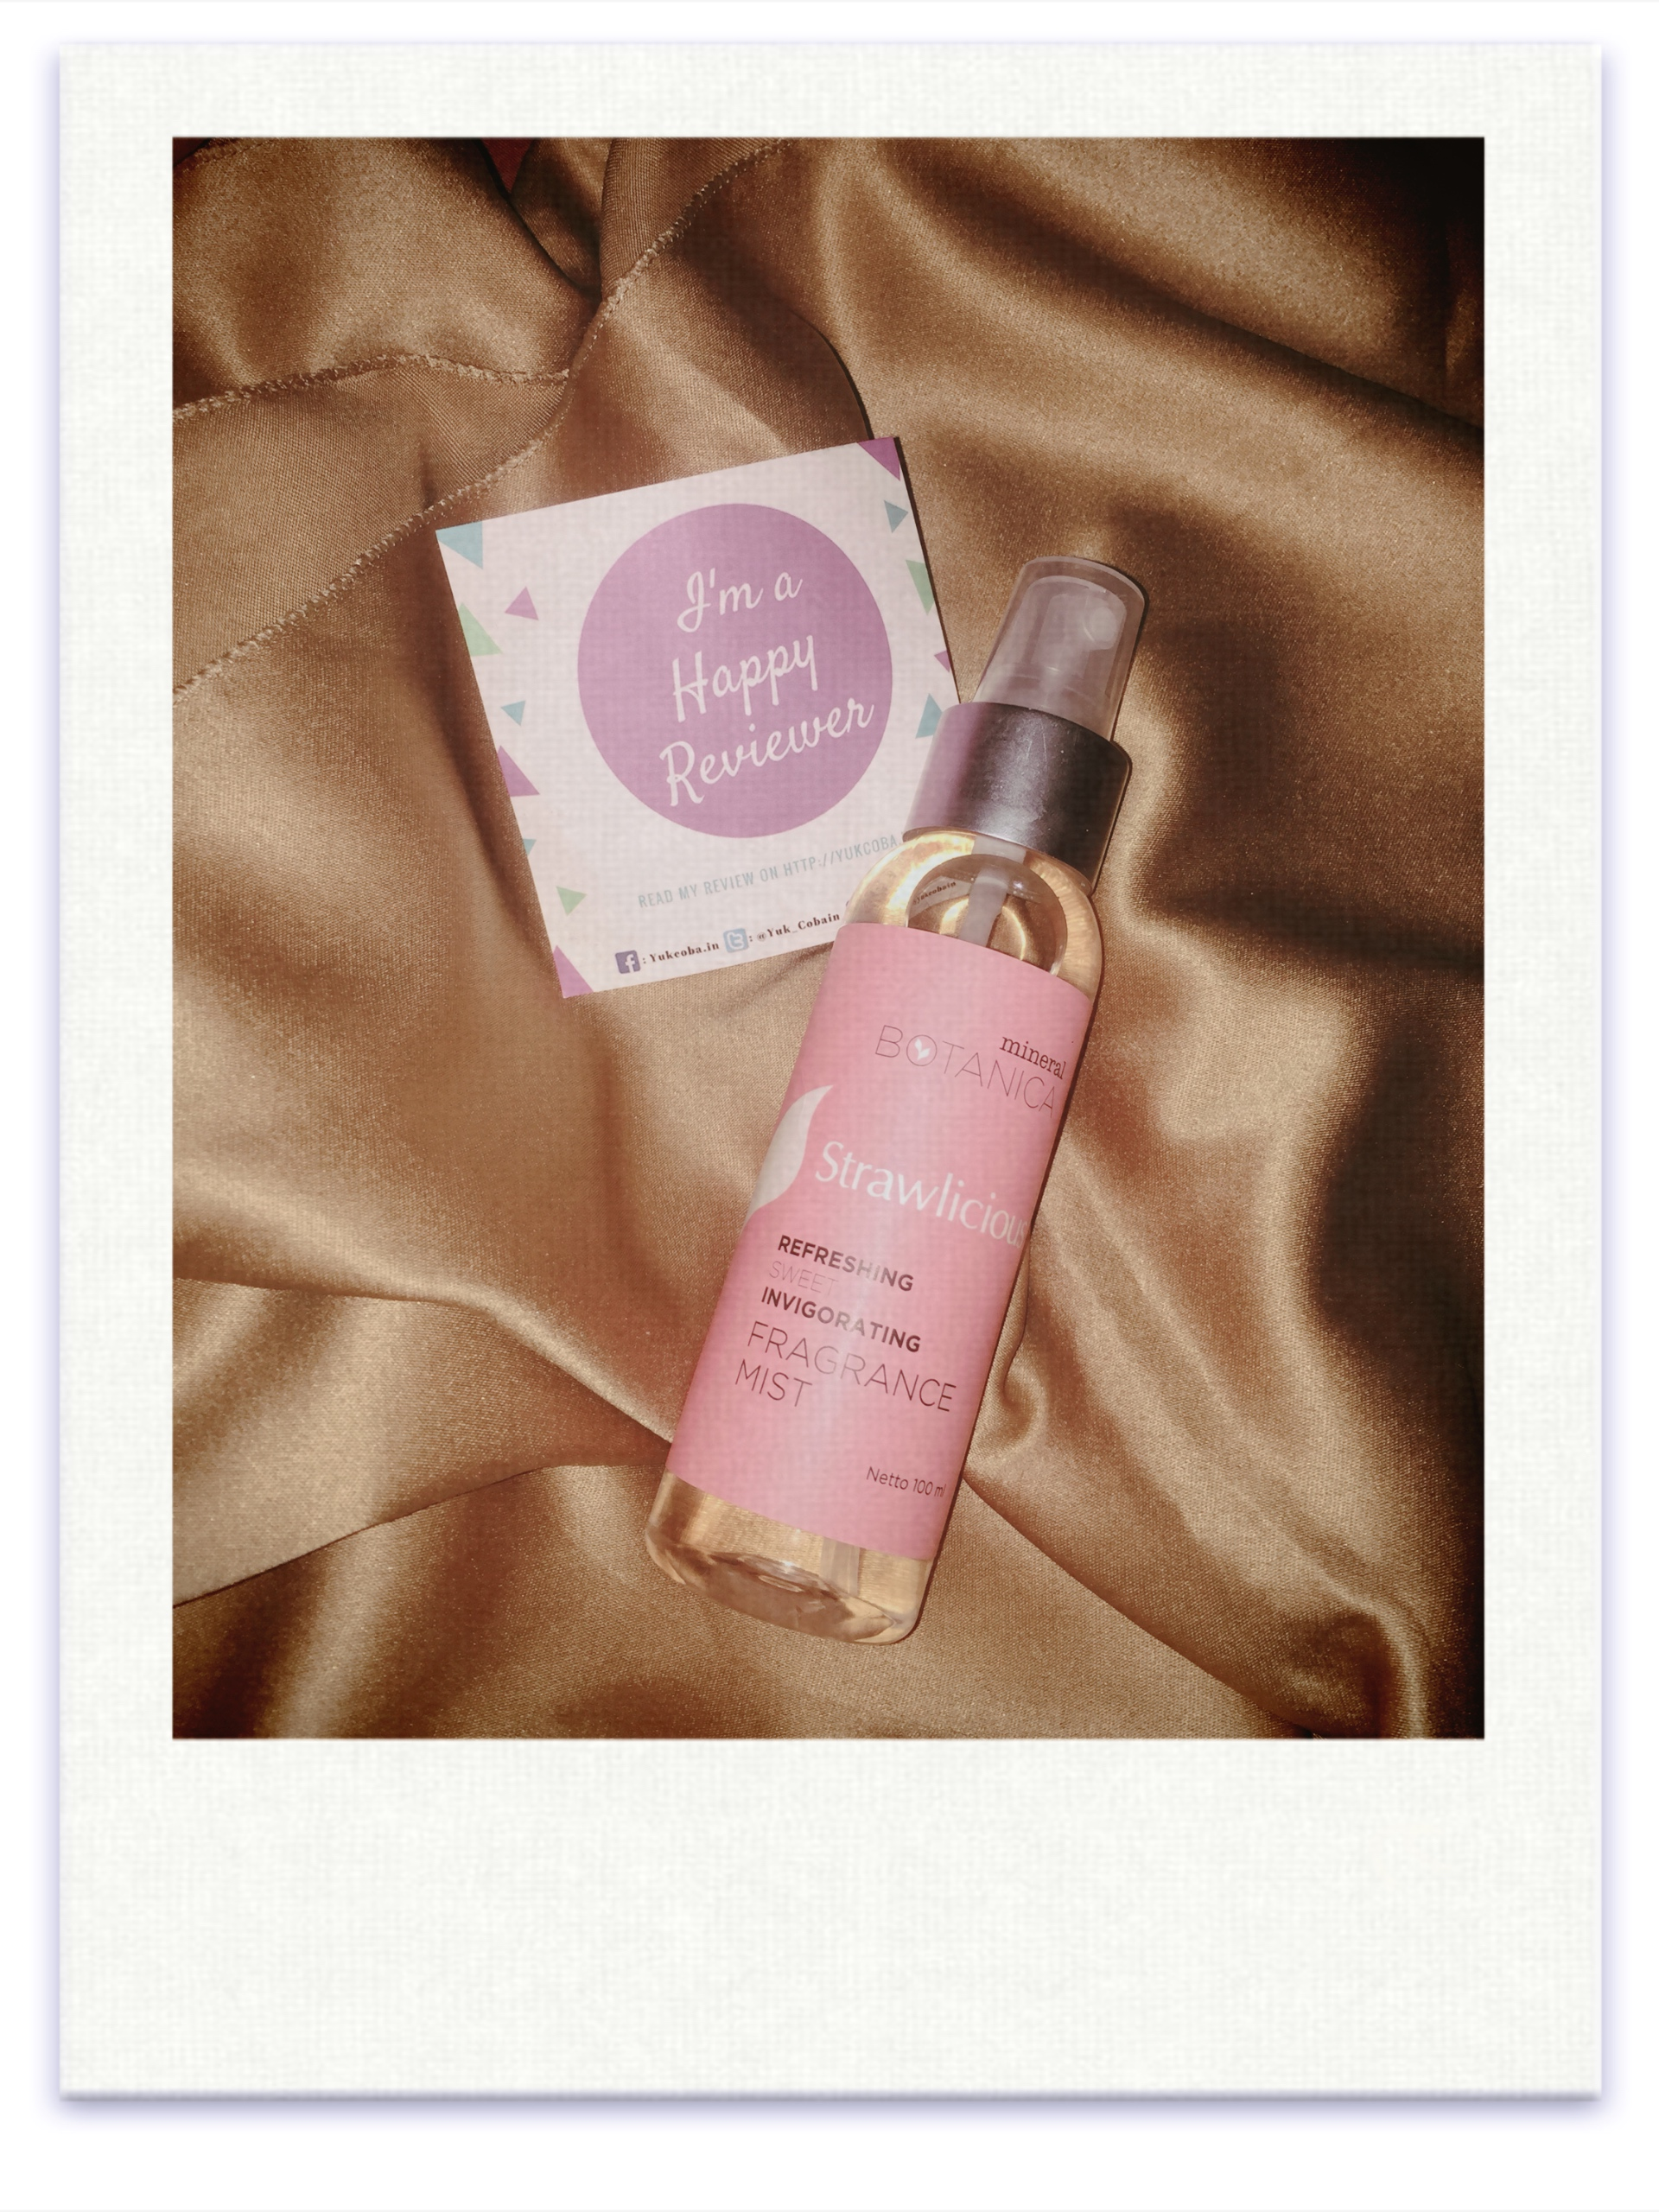 image review Mineral Botanica Strawlicious Fragrance Mist